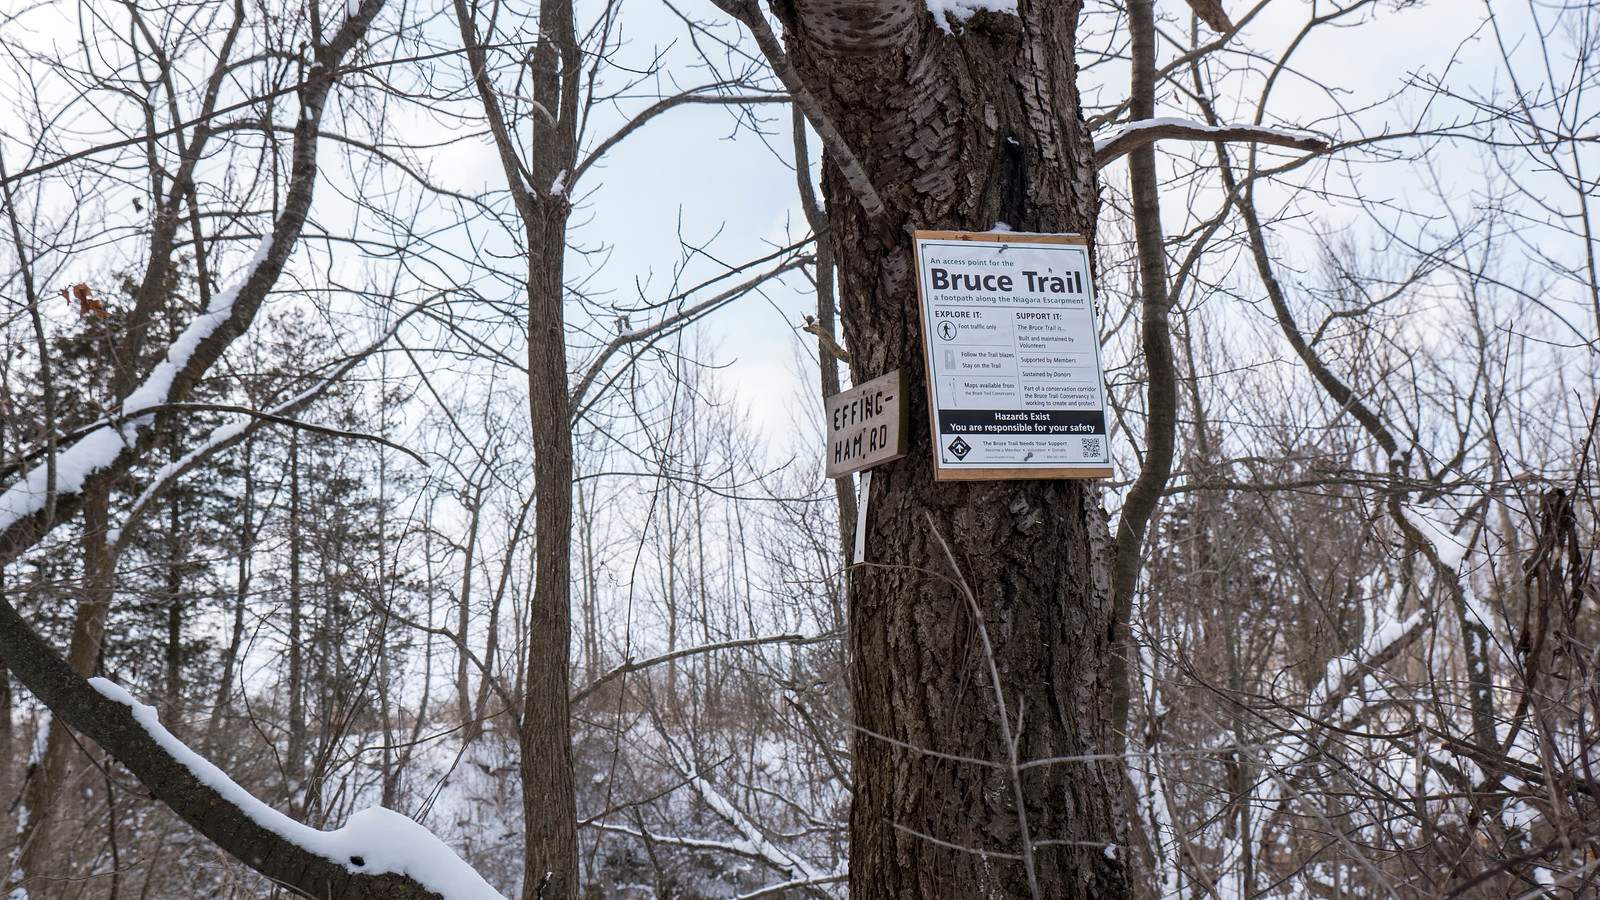 Short Hills Provincial Park Winter Hiking - Bruce Trail Hike #8